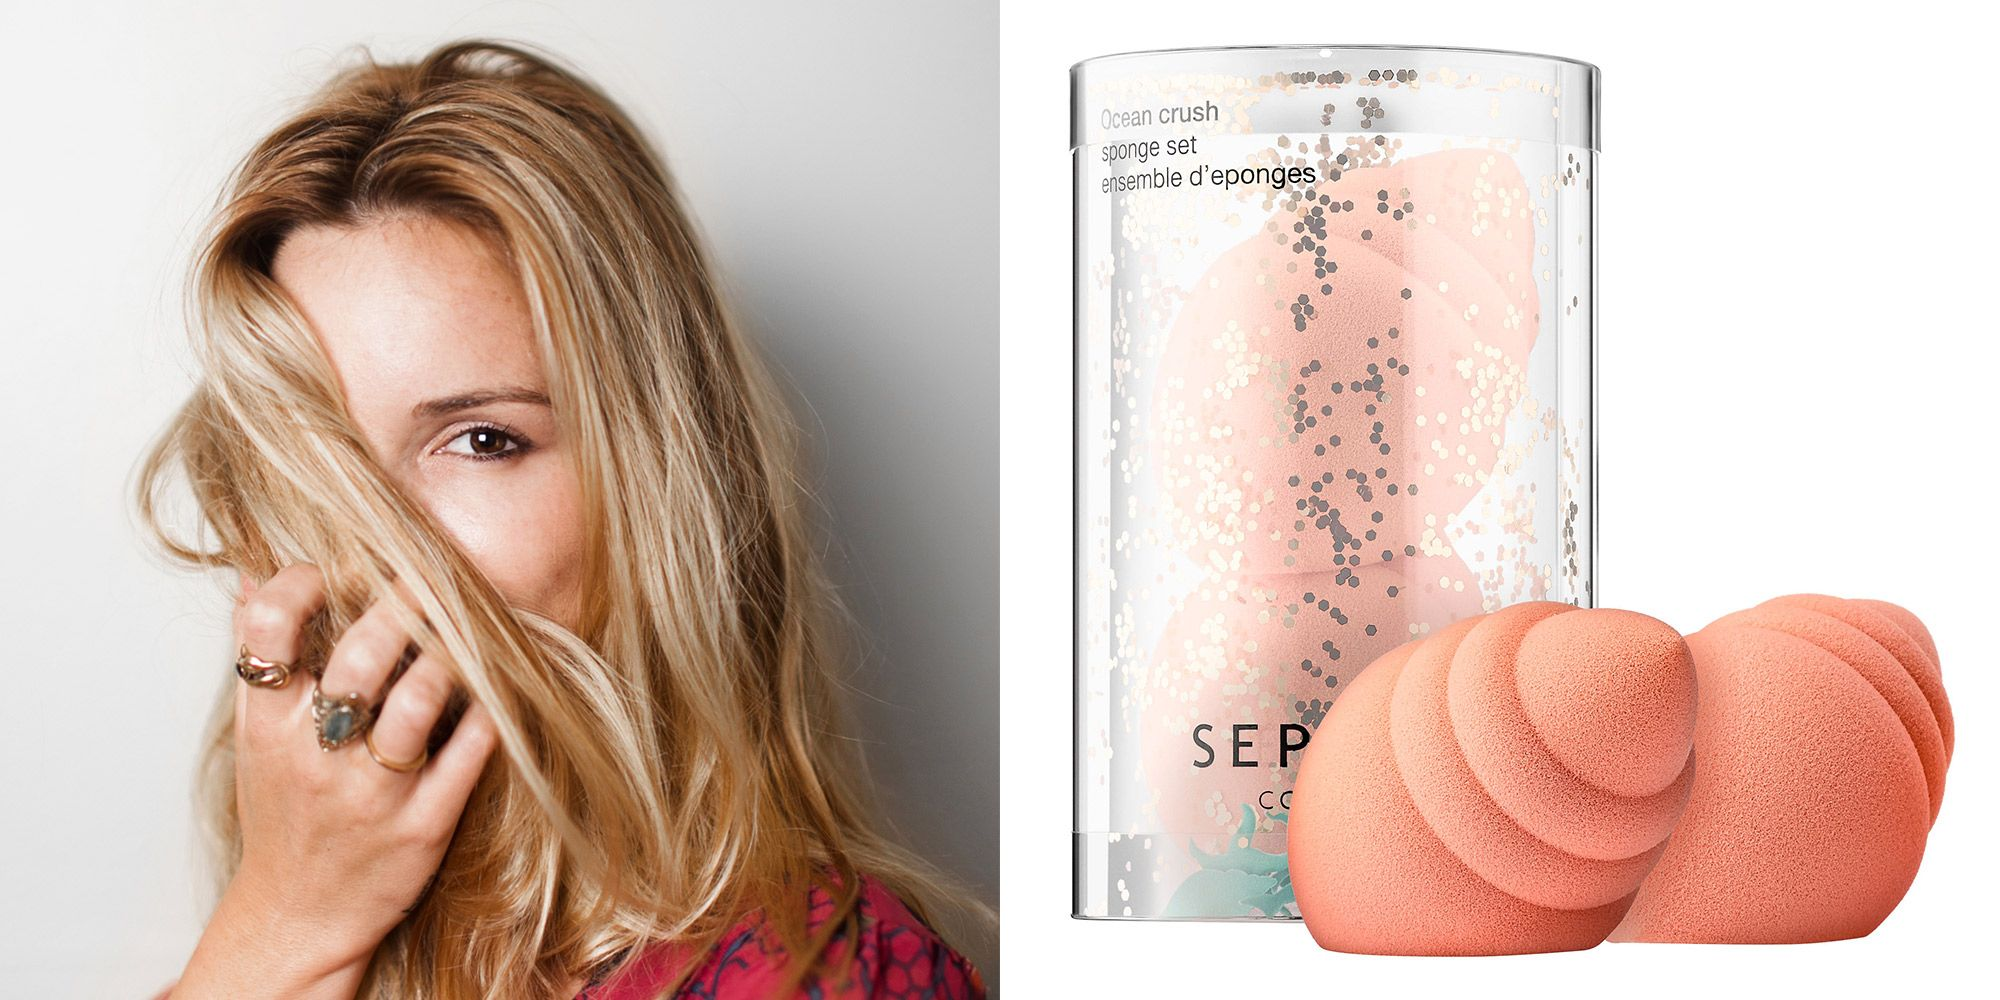 Twitter Is Freaking Out Over Sephora's New Penis-Looking ...